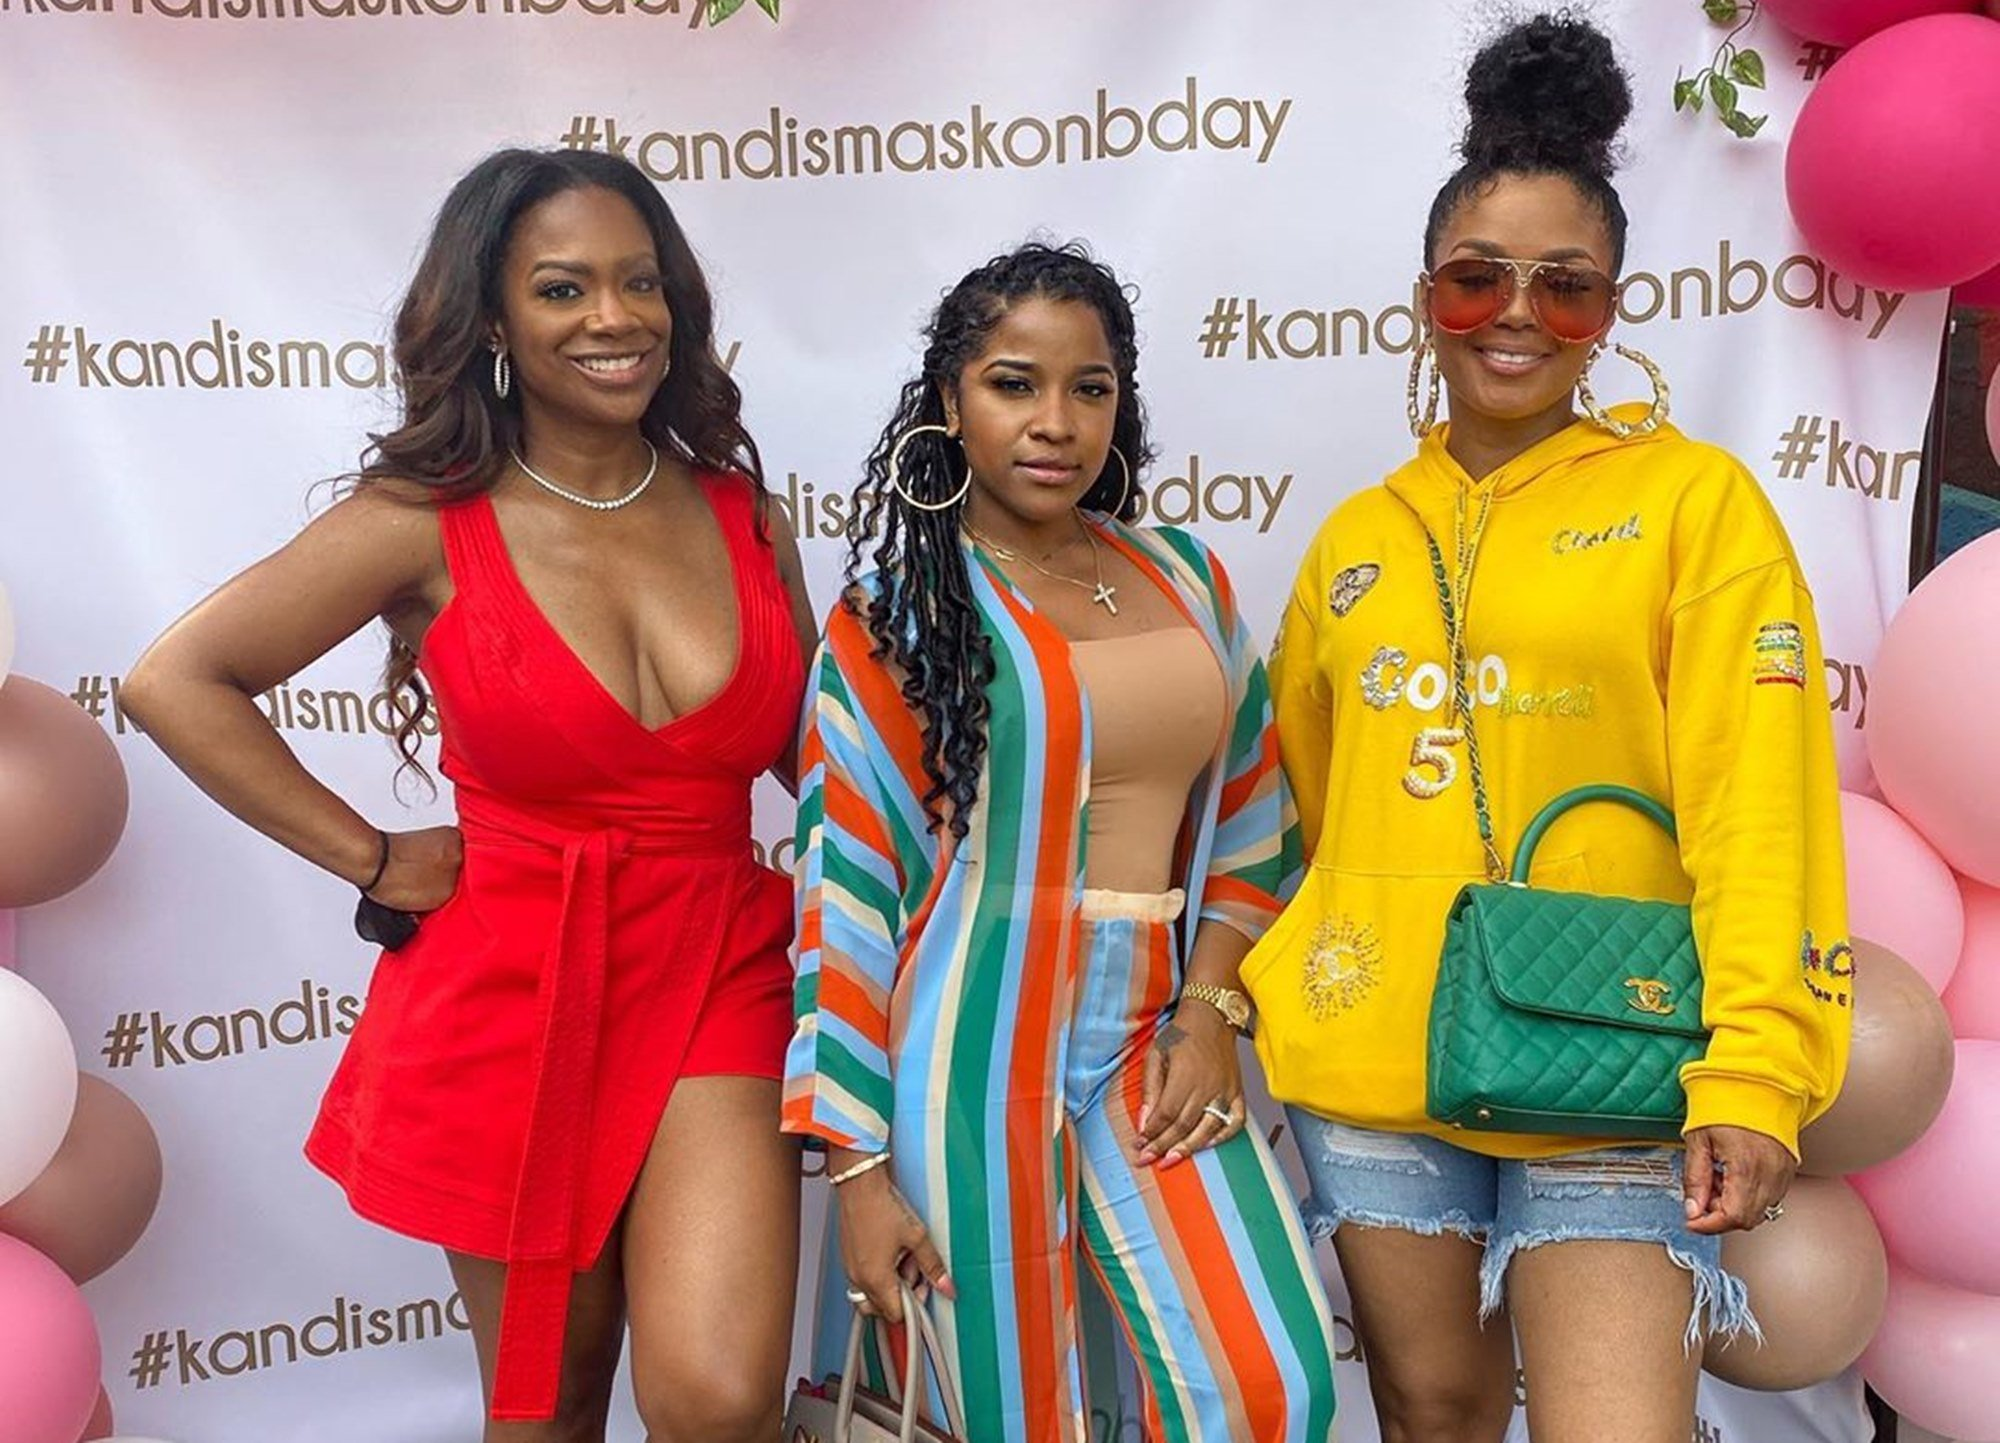 Kandi Burruss And Her Friends — Tiny Harris And Rasheeda Frost — Land In Trouble After Toya Johnson Posted These Photos